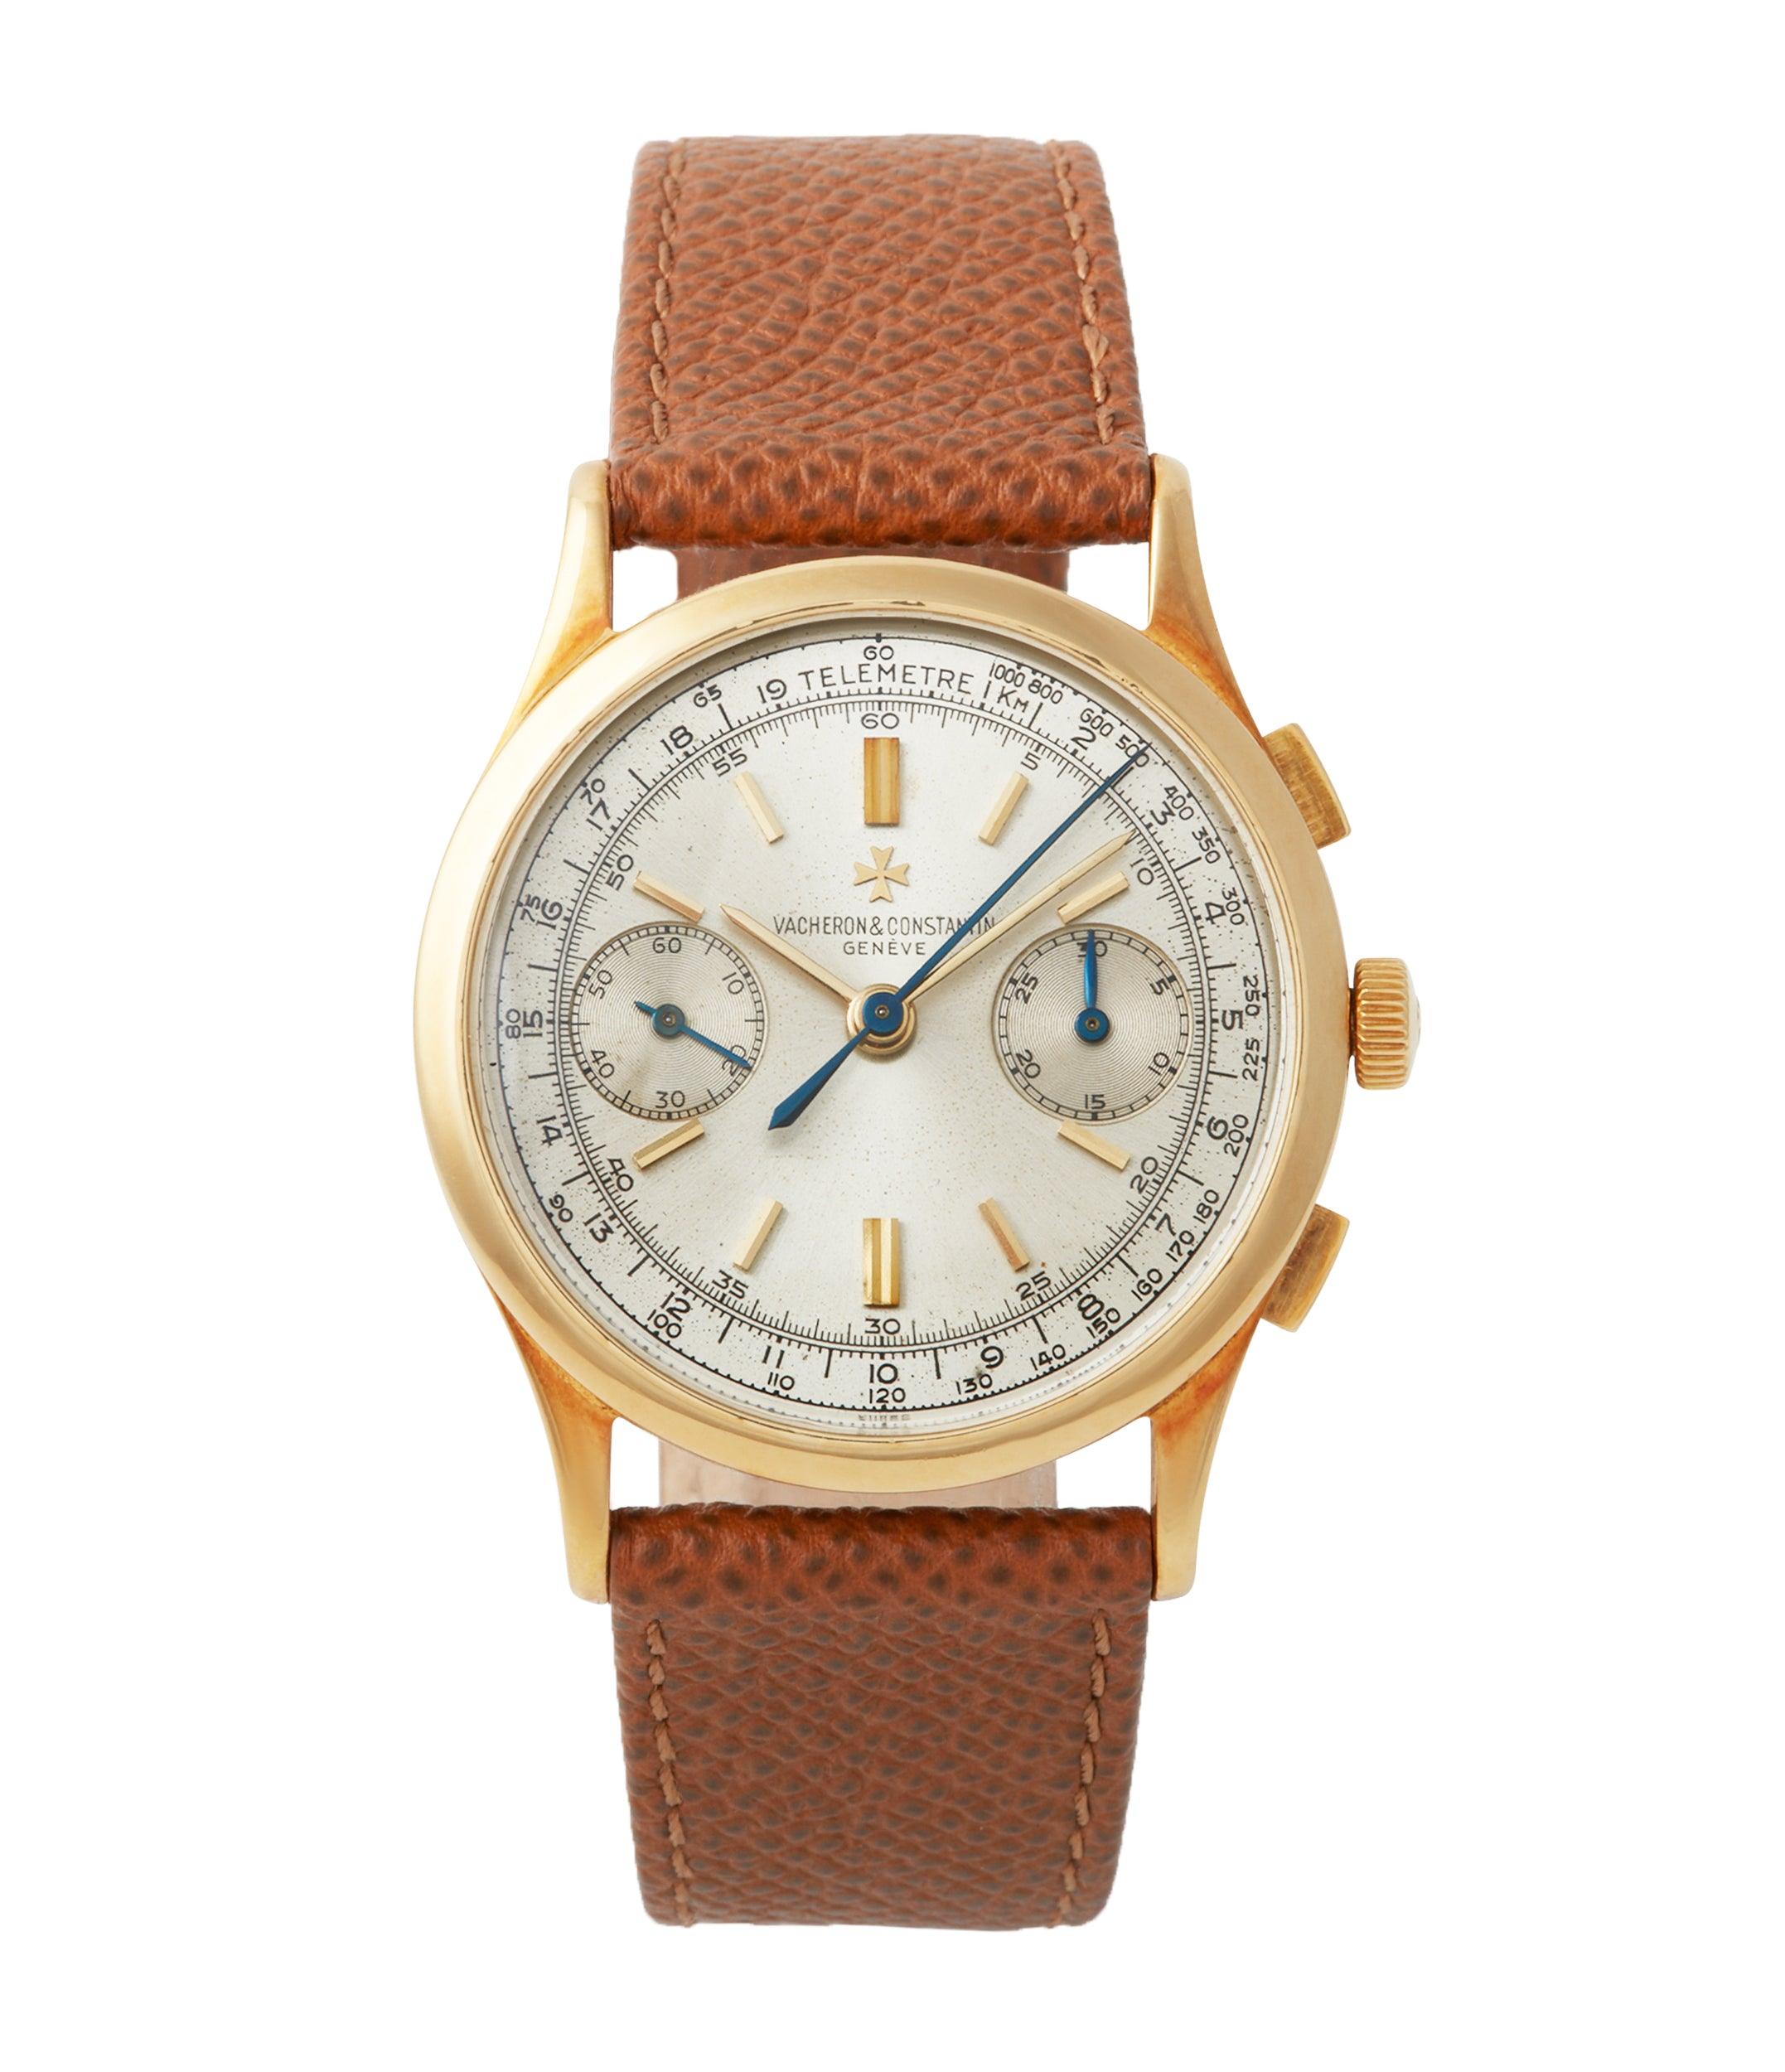 buy Vacheron Constantin Chronograph Ref. 4072 yellow gold rare vintage dress watch for sale A Collected Man London British specialist rare watches